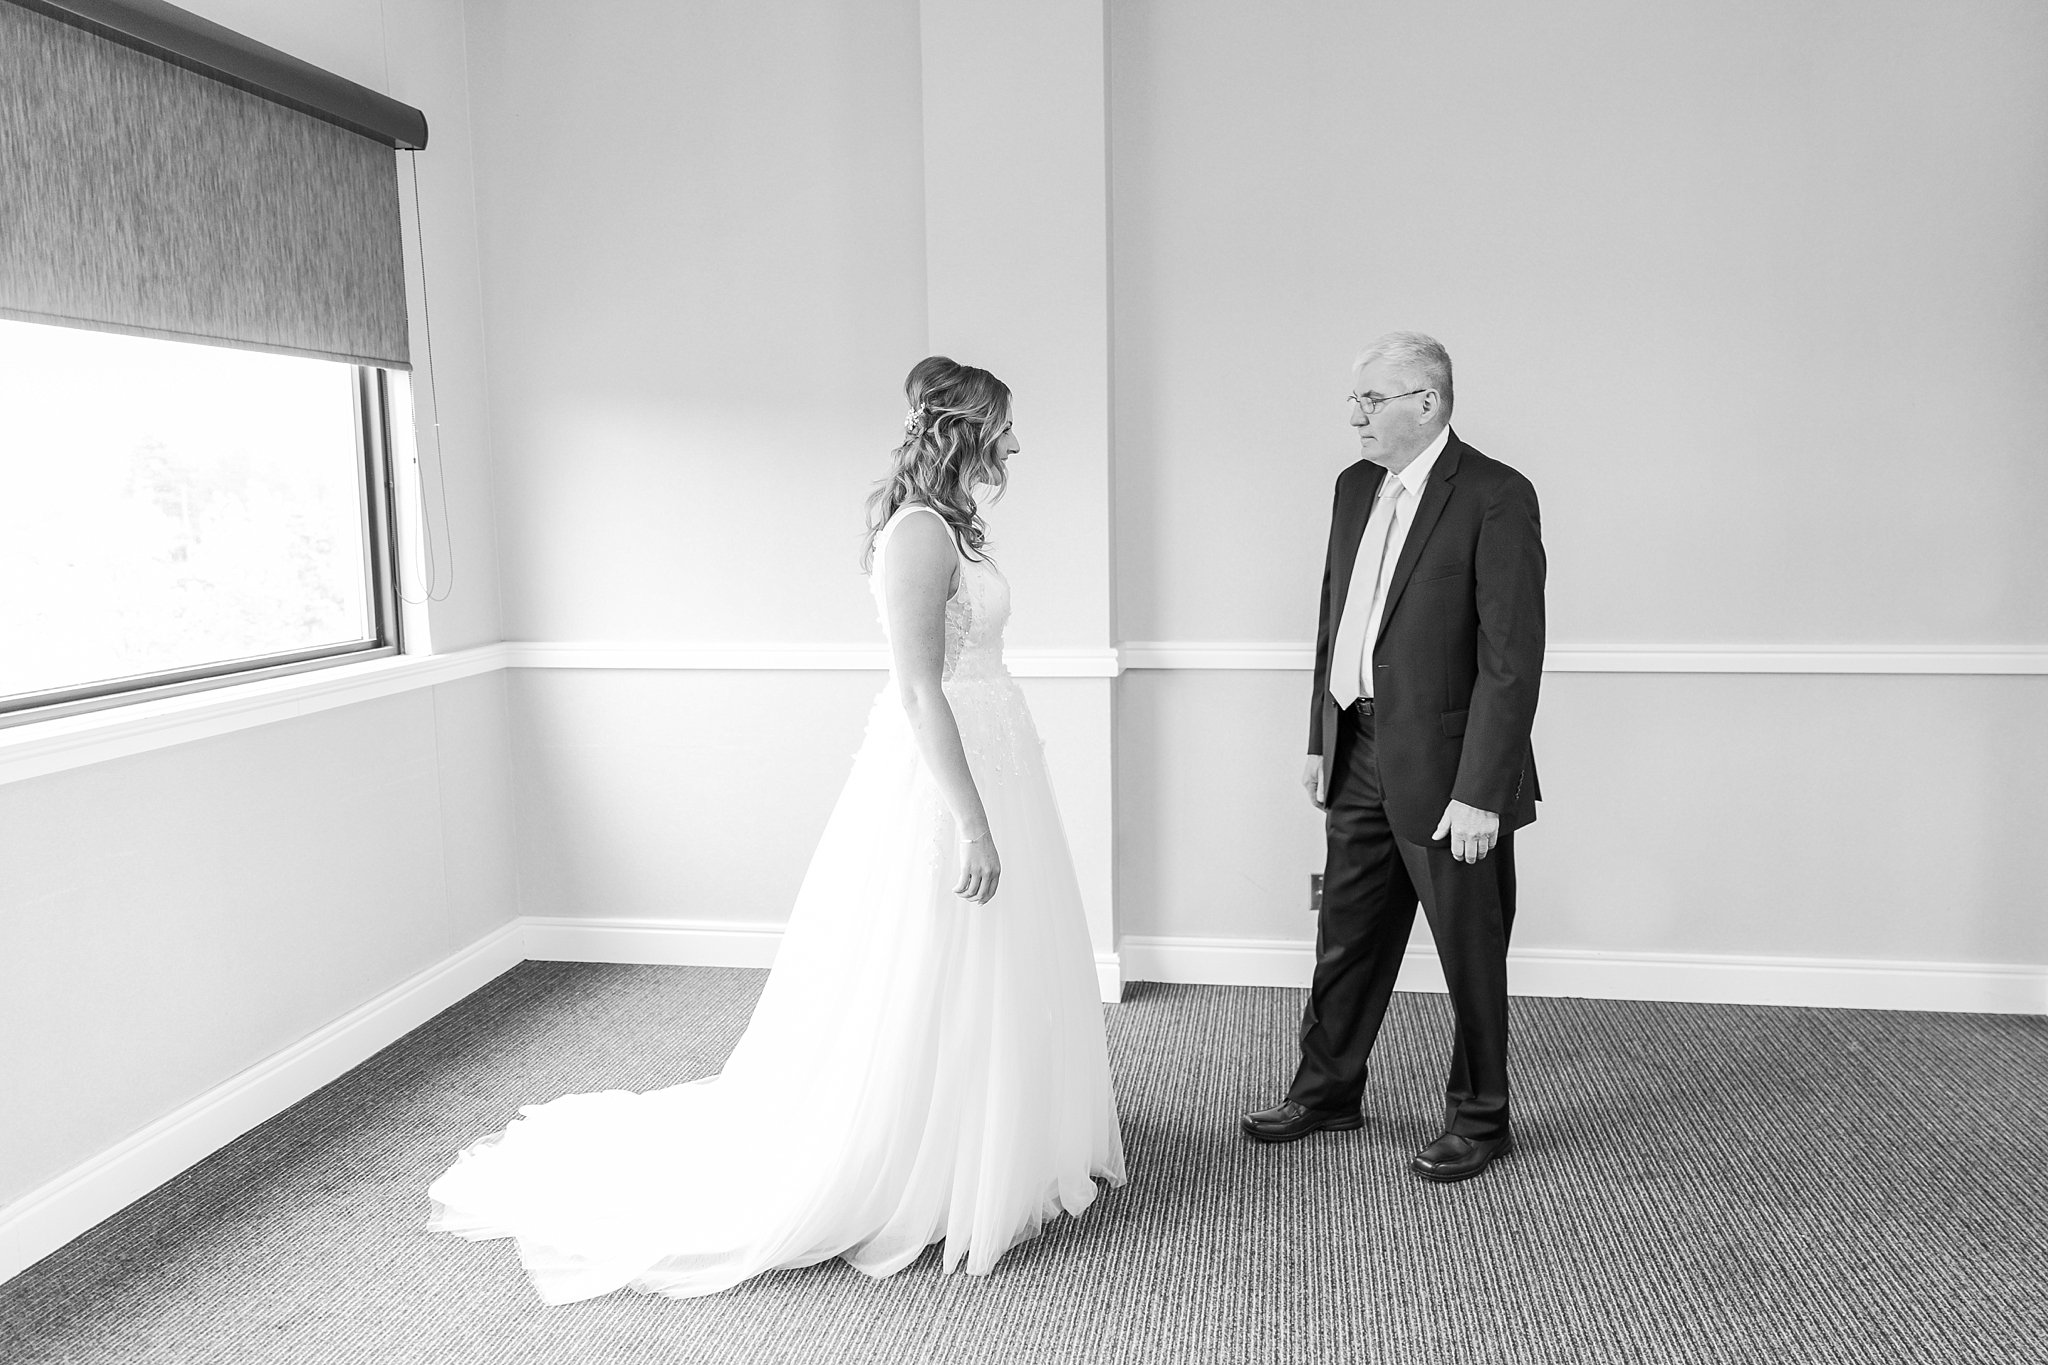 joyful-candid-laid-back-wedding-photos-in-ann-arbor-michigan-and-at-the-eagle-crest-golf-resort-by-courtney-carolyn-photography_0018.jpg